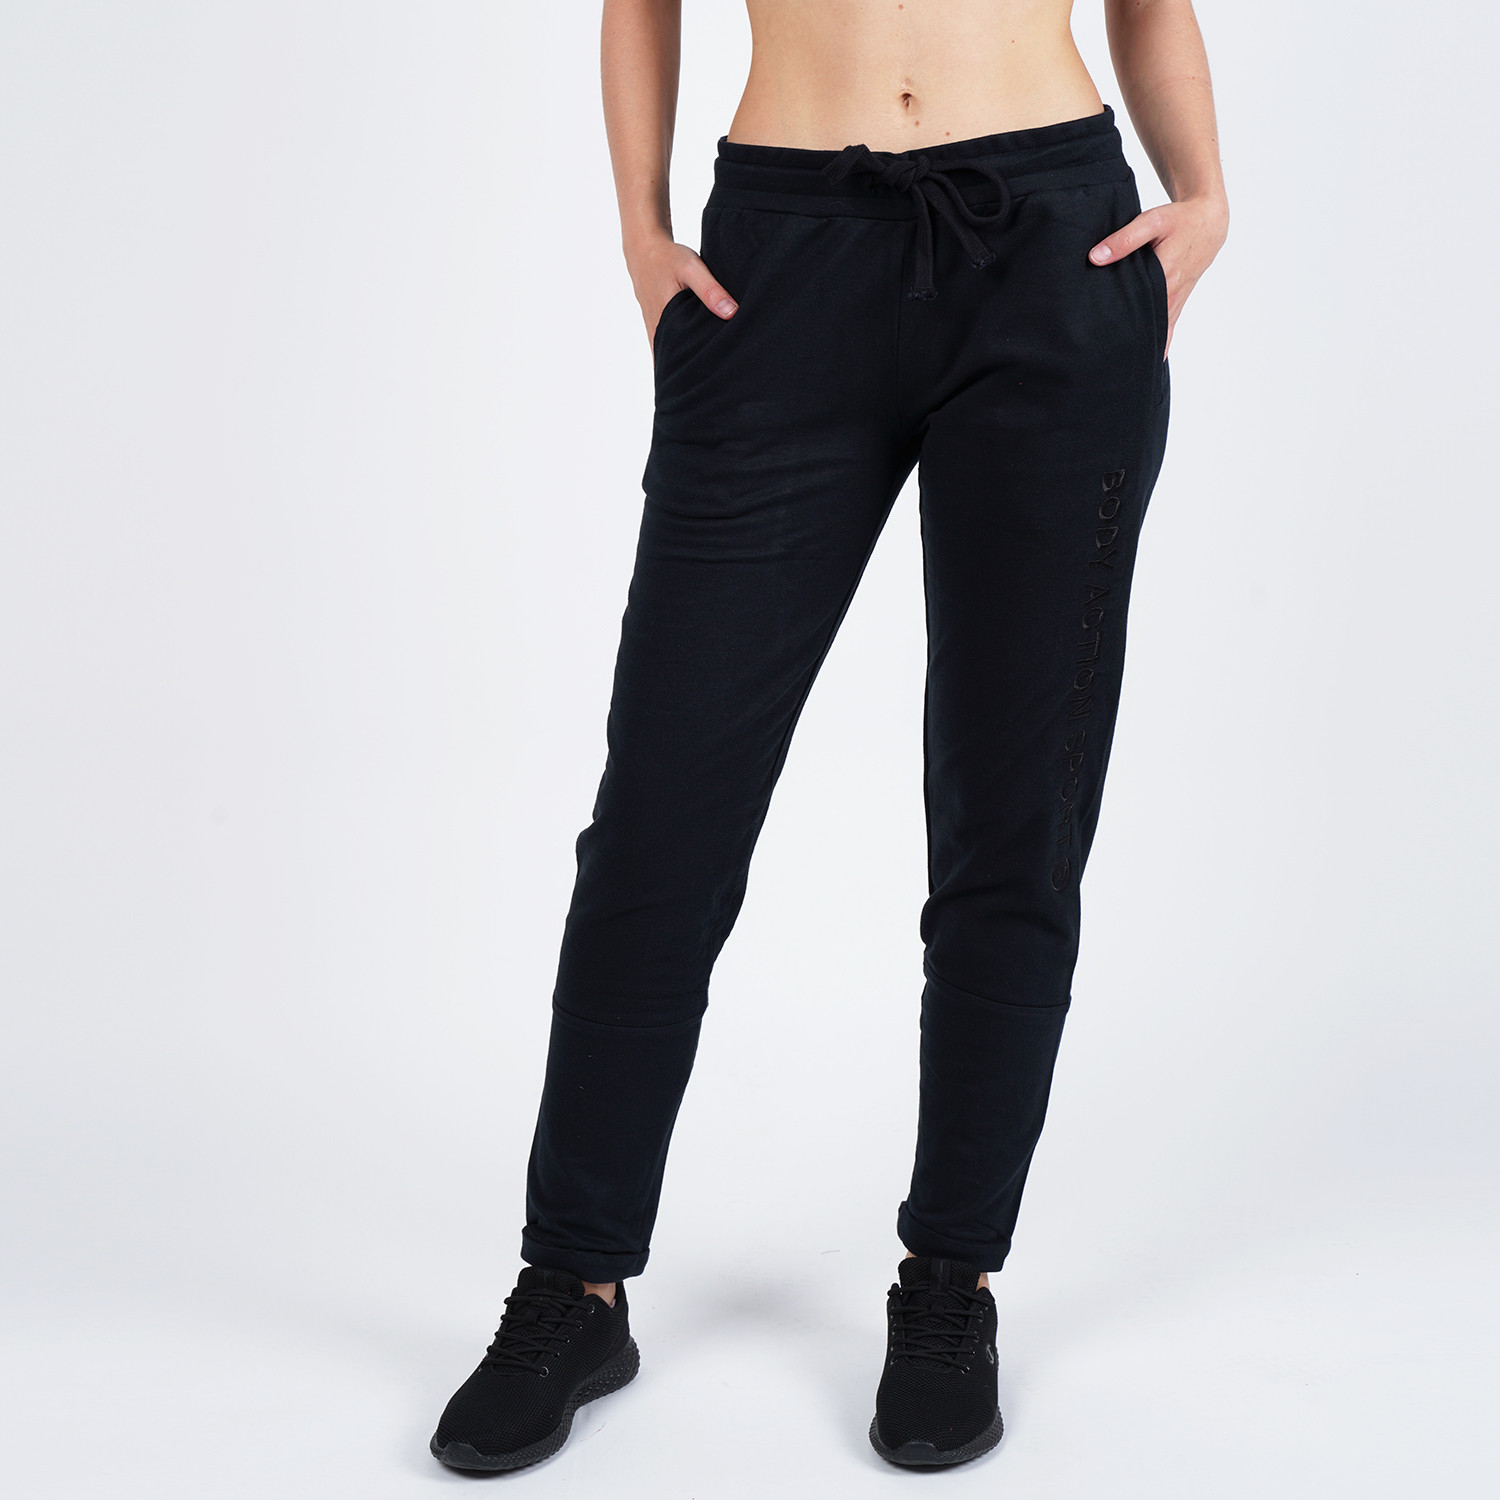 Body Action Women's Skinny Joggers (9000050087_1899)